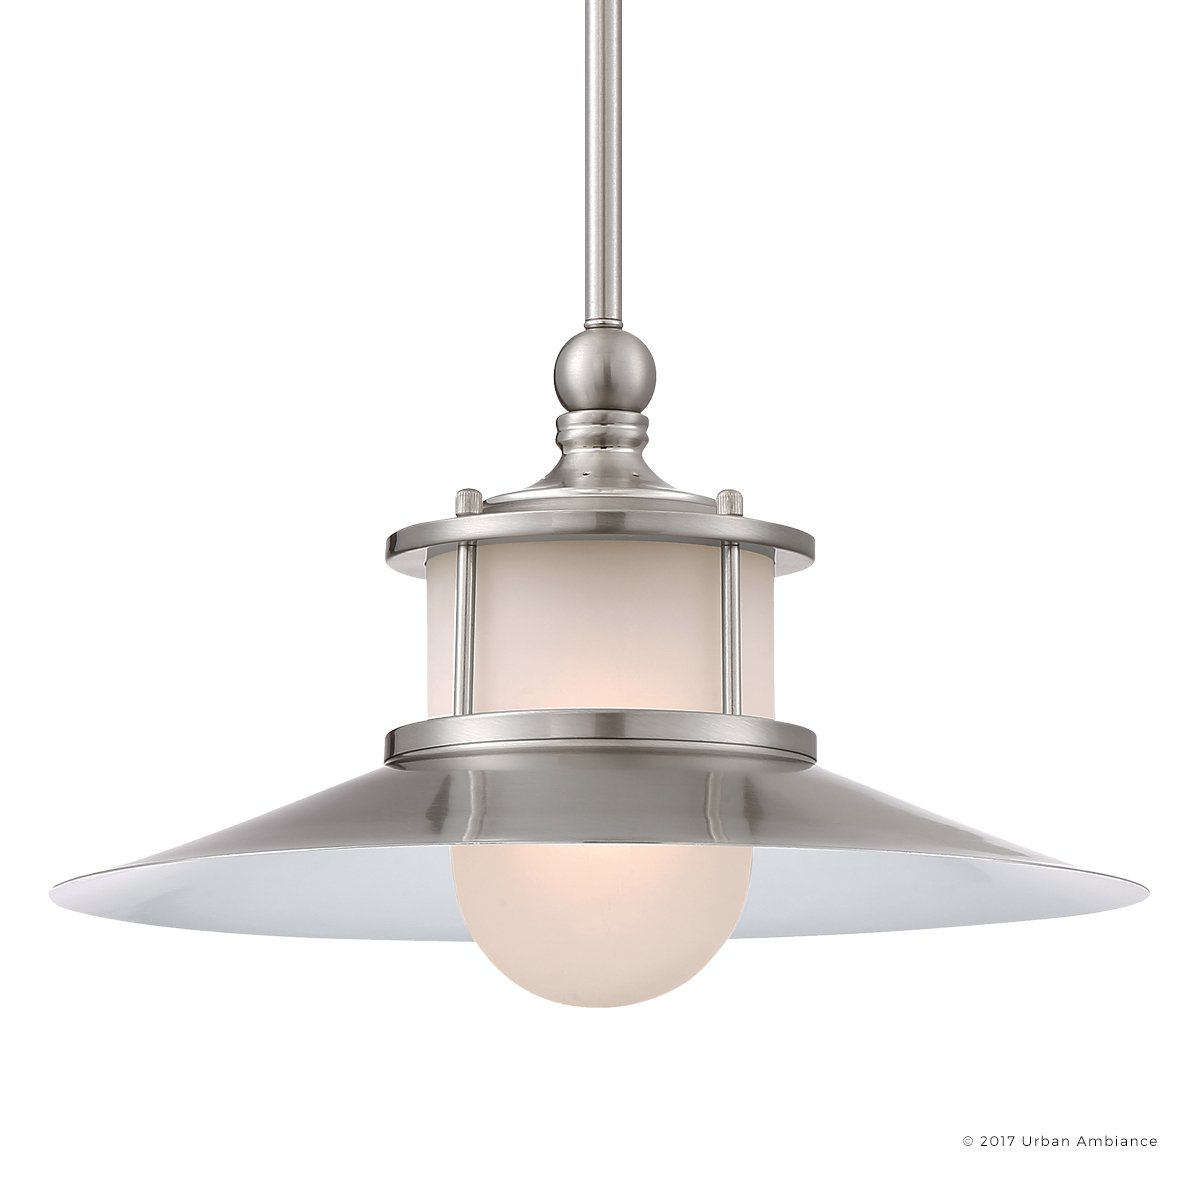 Luxury Nautical Indoor Hanging Pendant Light, Medium Size: 9''H x 14''W, with Coastal Style Elements, Hooded Design, Pretty Brushed Nickel Finish and Acid Etched Glass, UQL2532 by Urban Ambiance